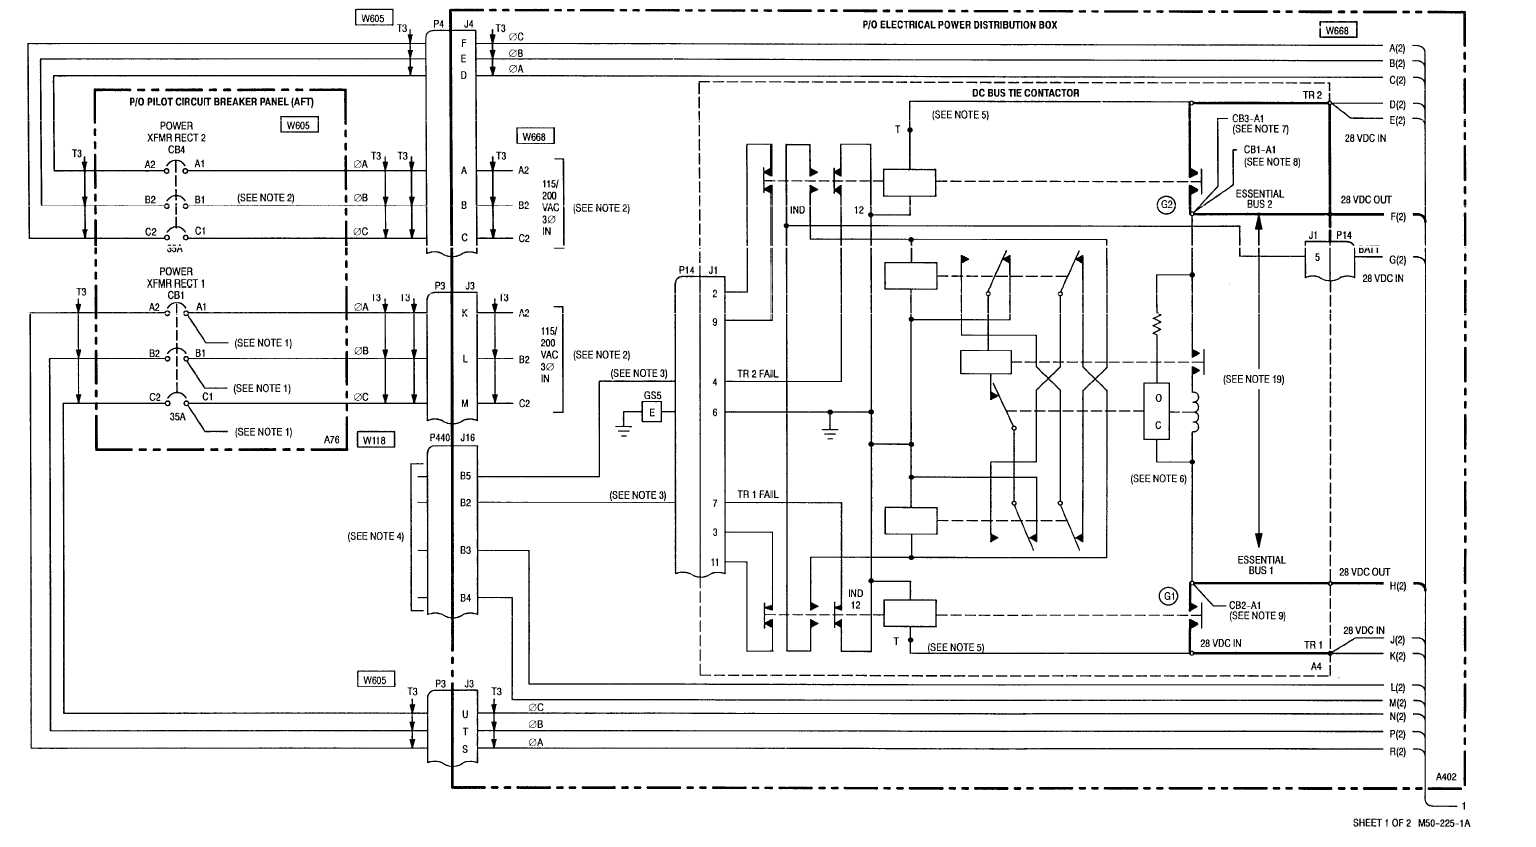 delco remy distributor wiring diagram wiring diagram delco remy distributor wiring diagram 22si nilza